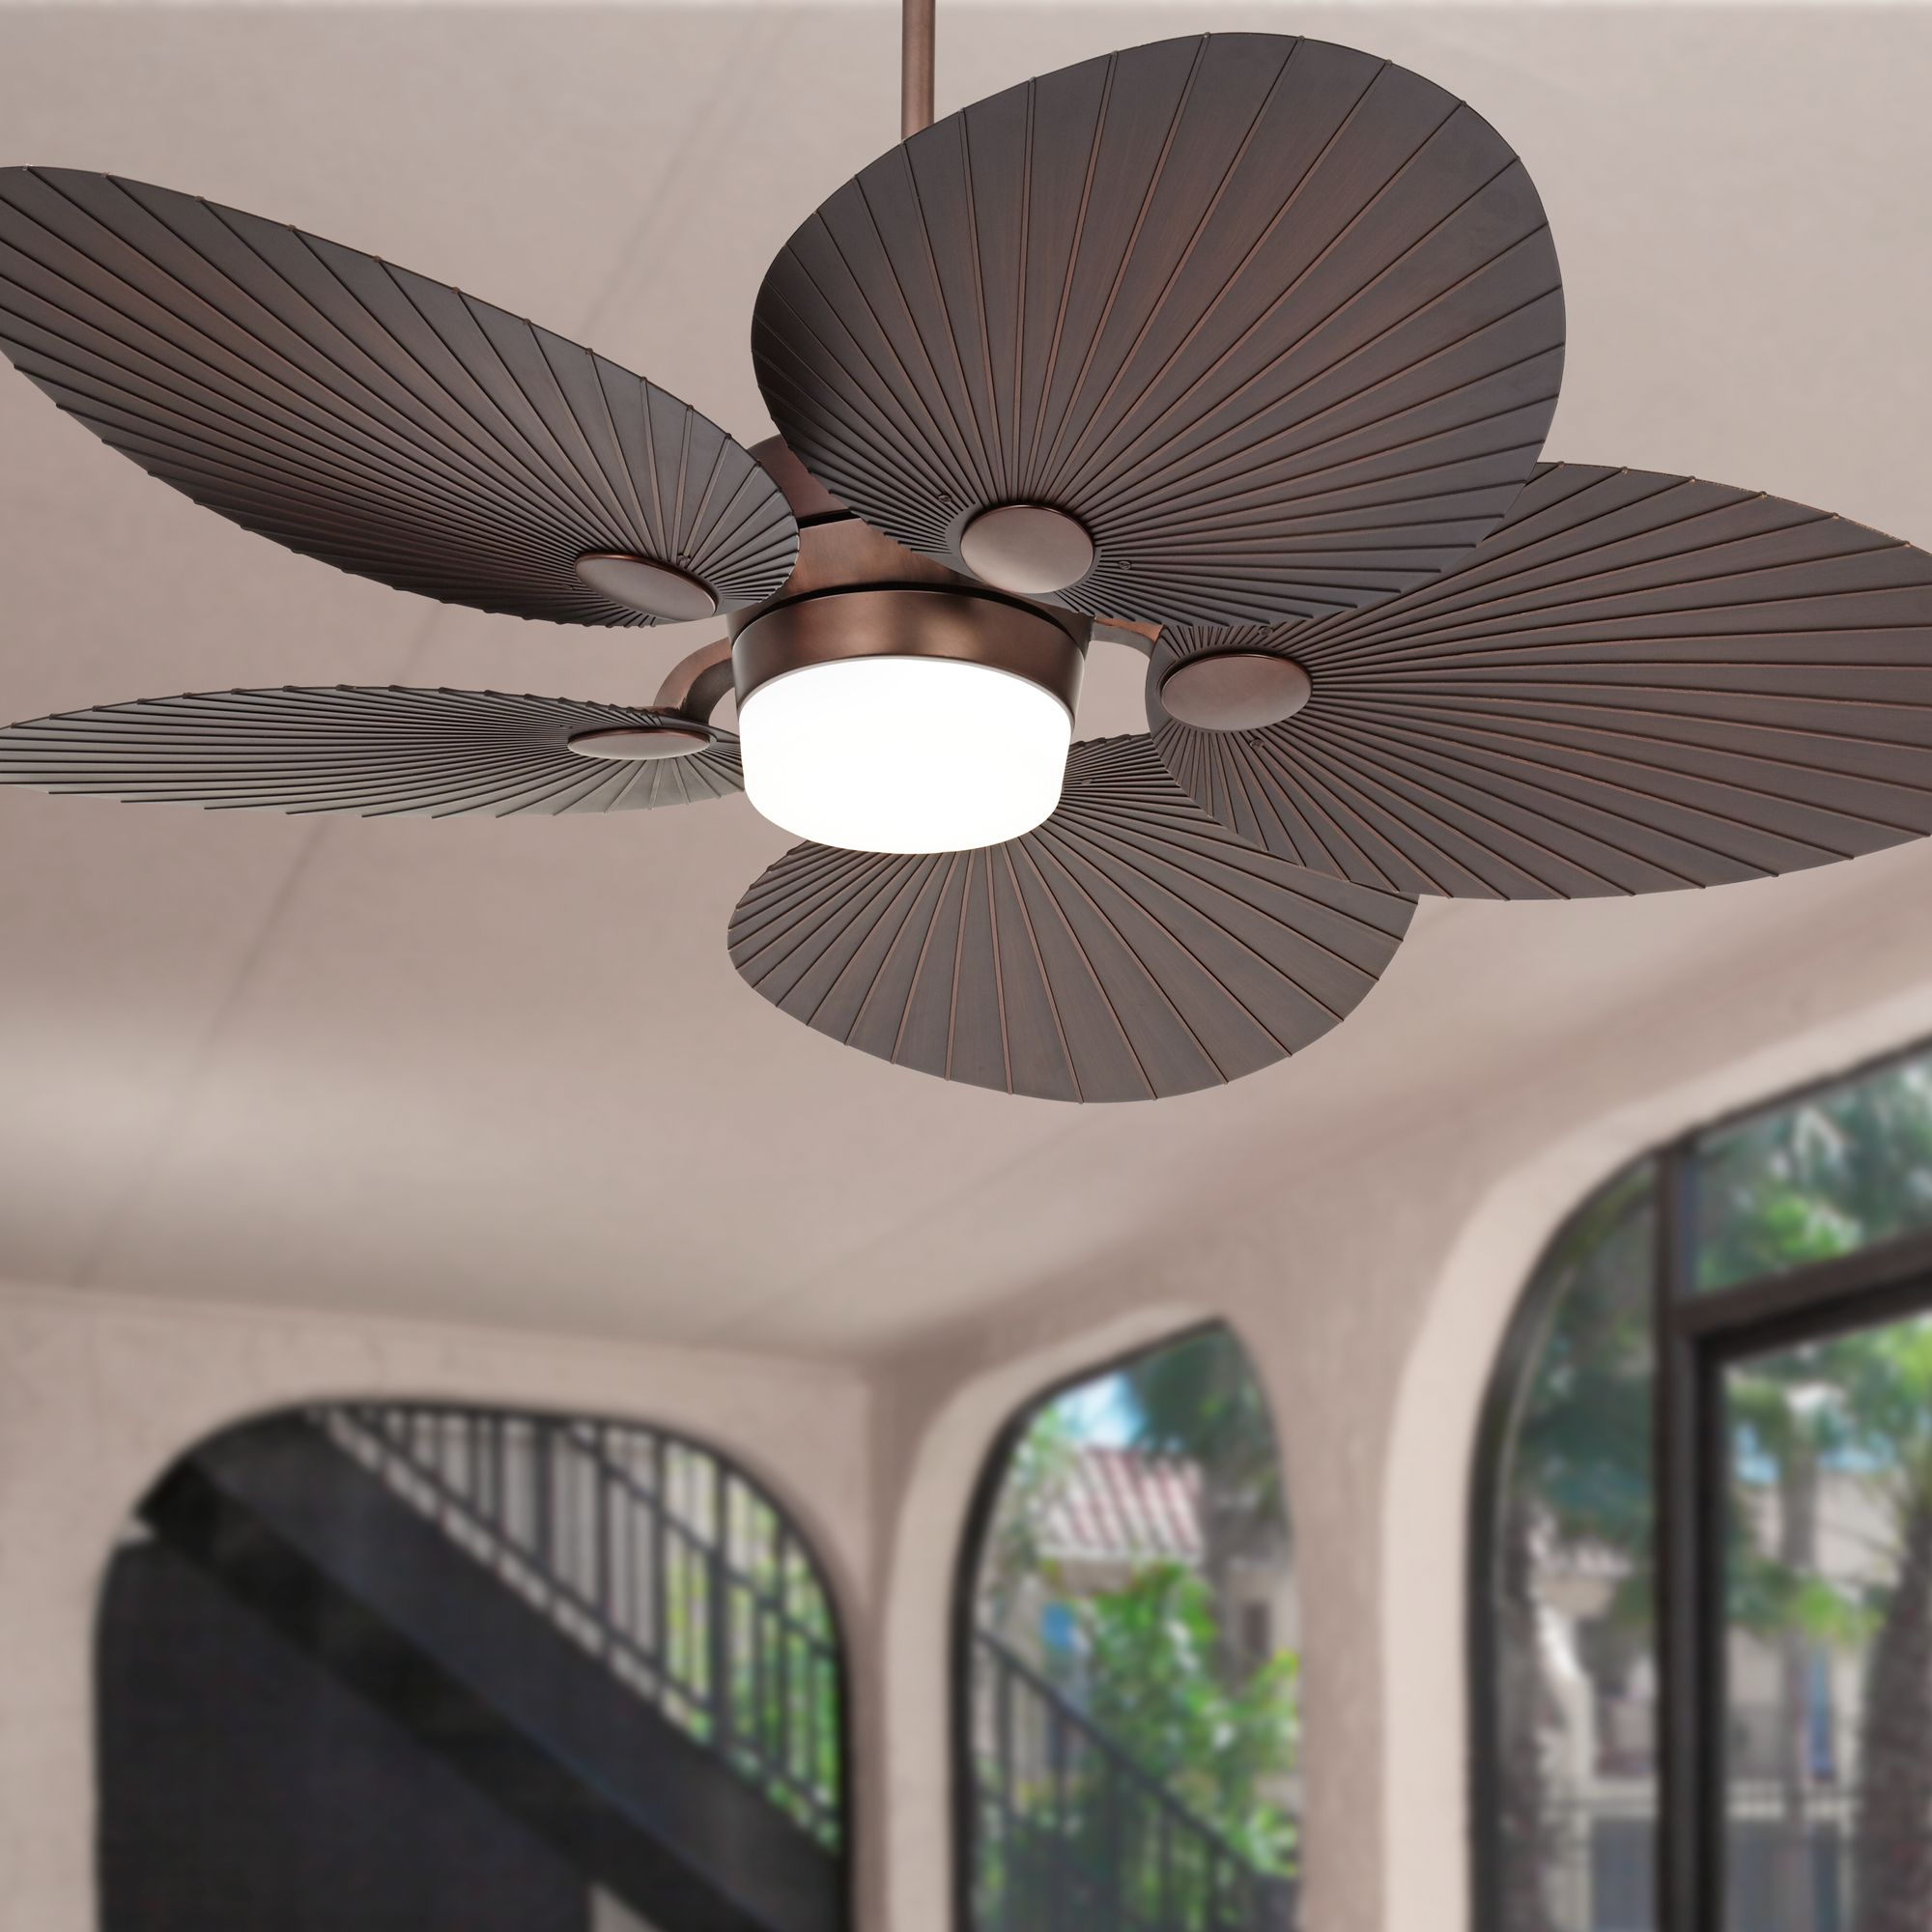 plus ceiling fan for design no outdoor your modern rustic makeover living decor light ideas lamps fans with add decoration